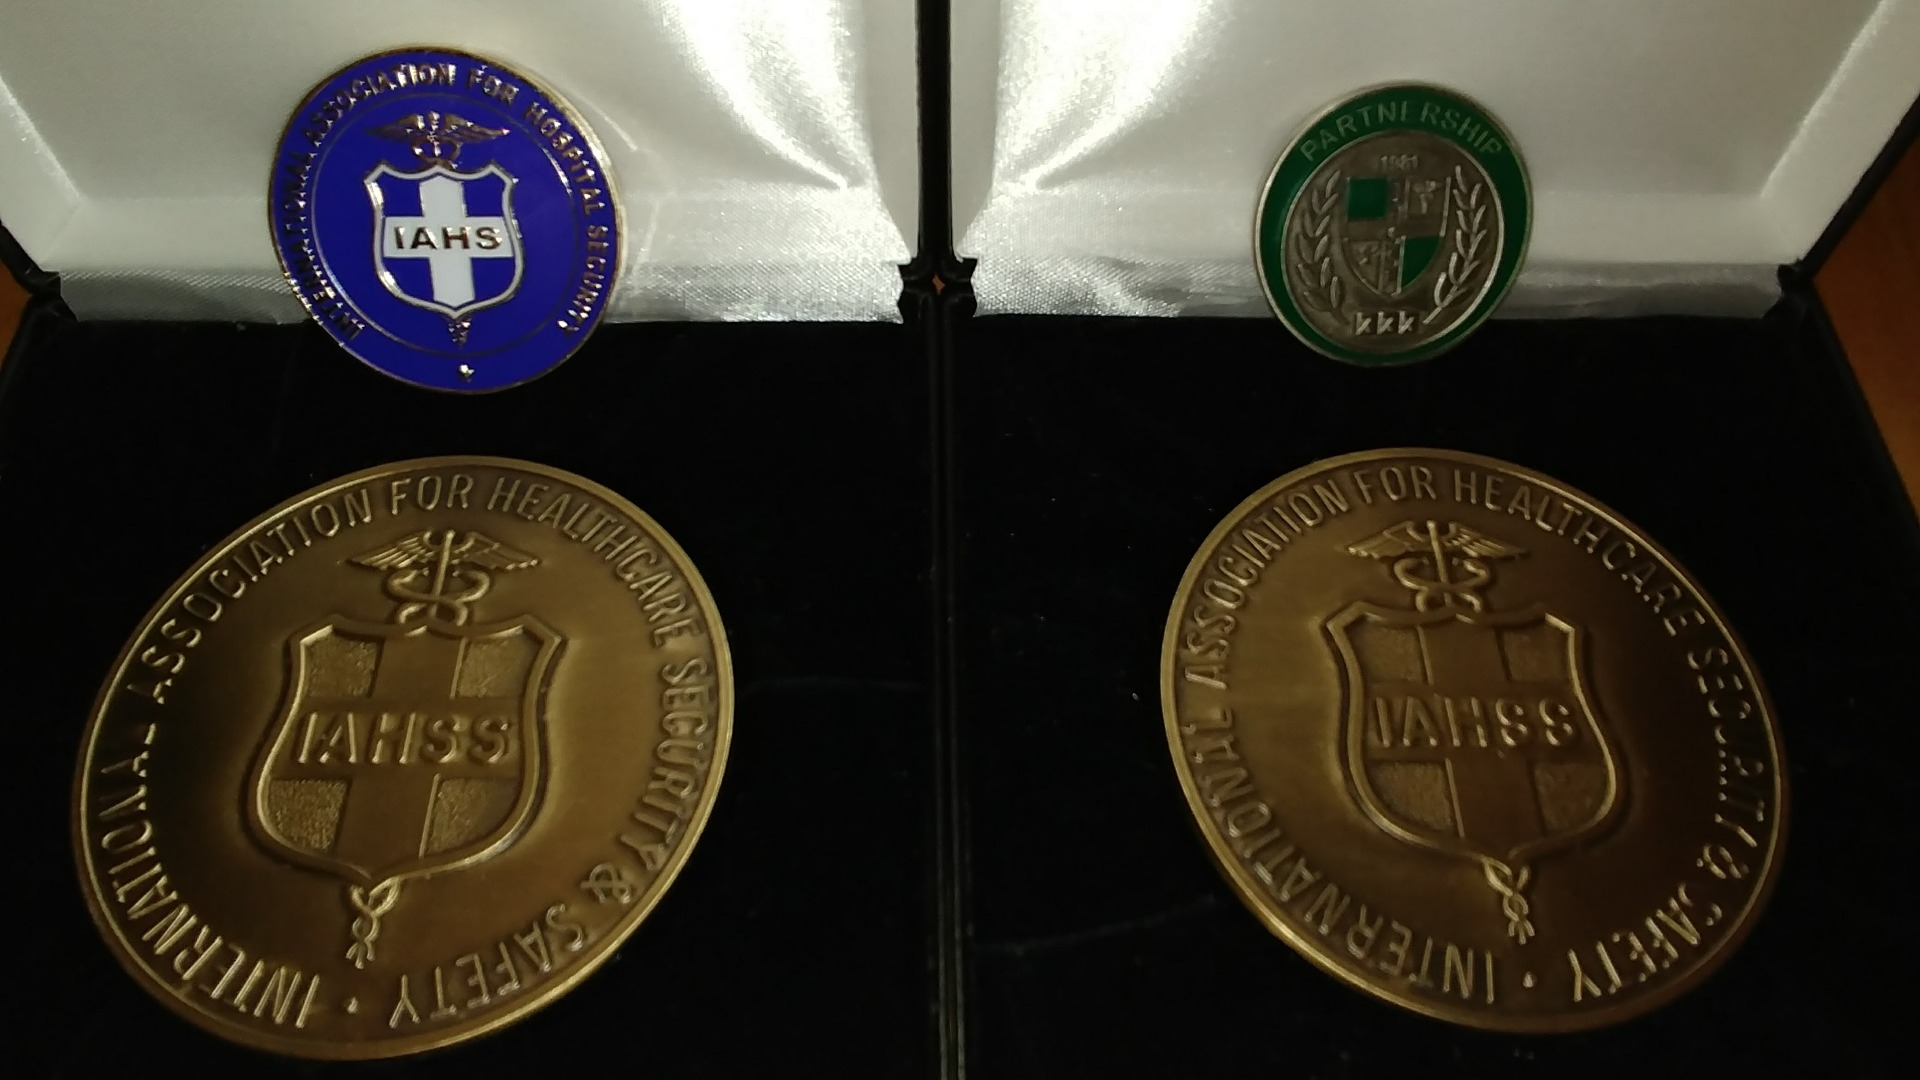 The only two IAHSS 50th Anniversary Foundation coins in existence